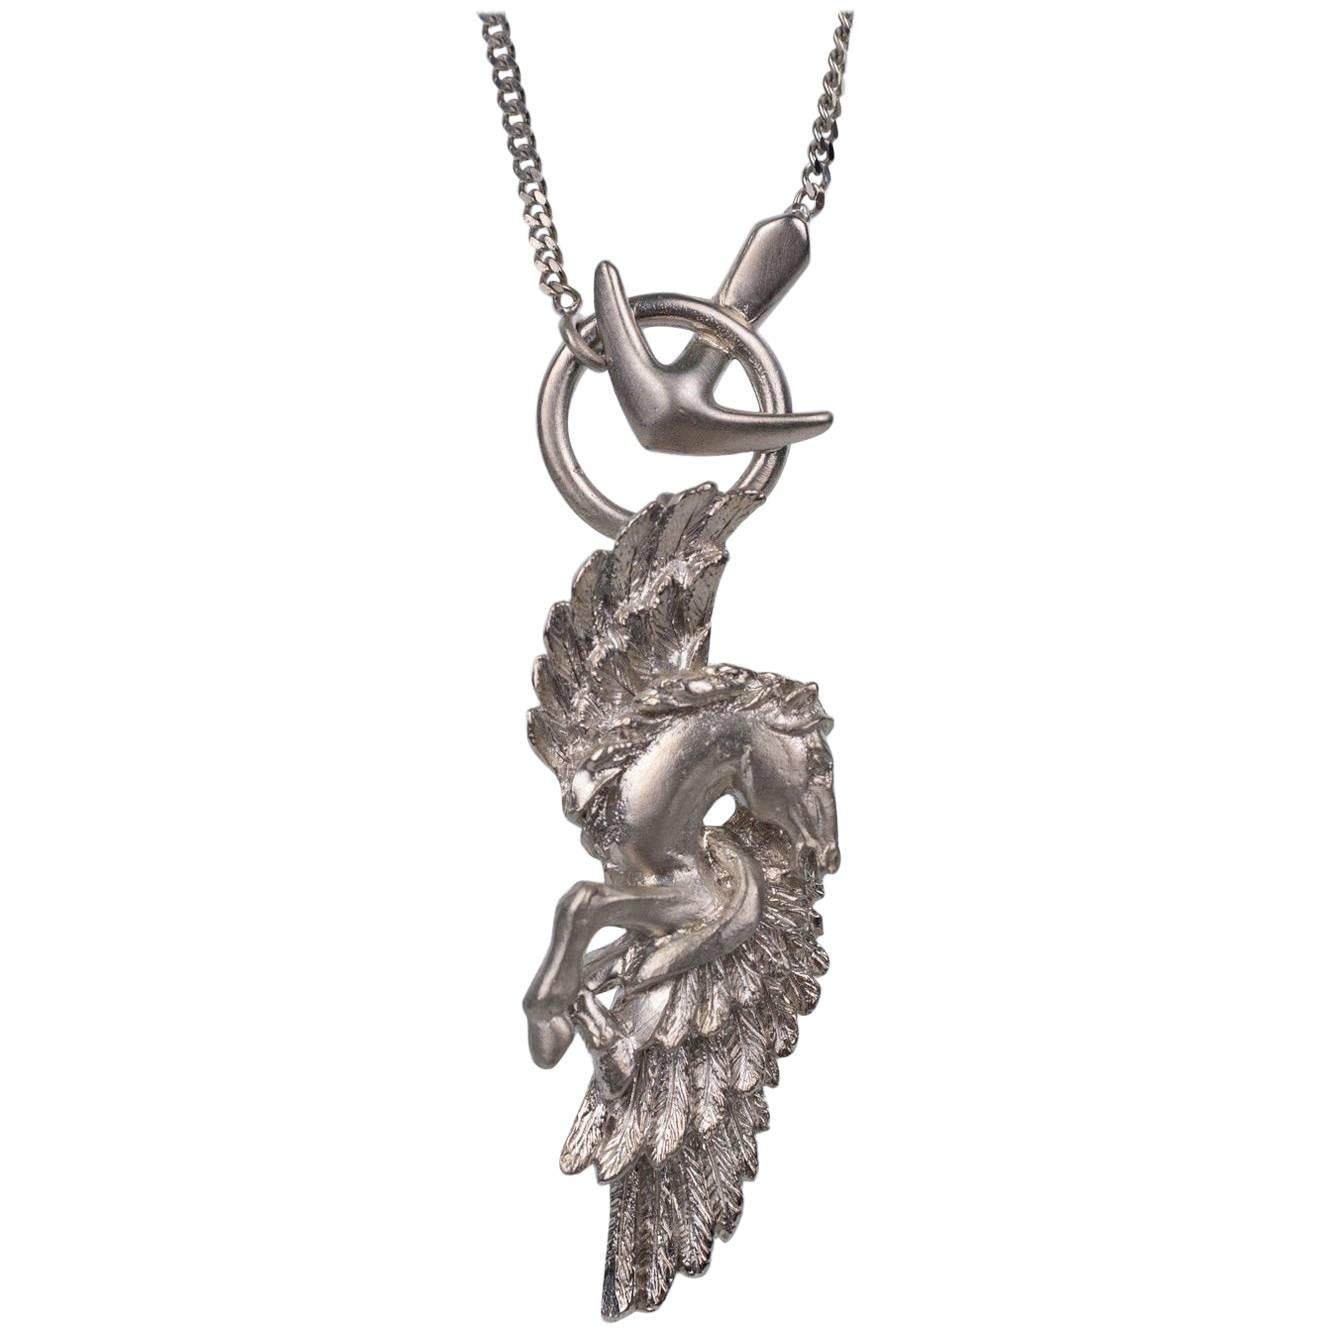 1stdibs Roberto Cavalli Silver Metal Serpent Pendant Chain Necklace rShdq